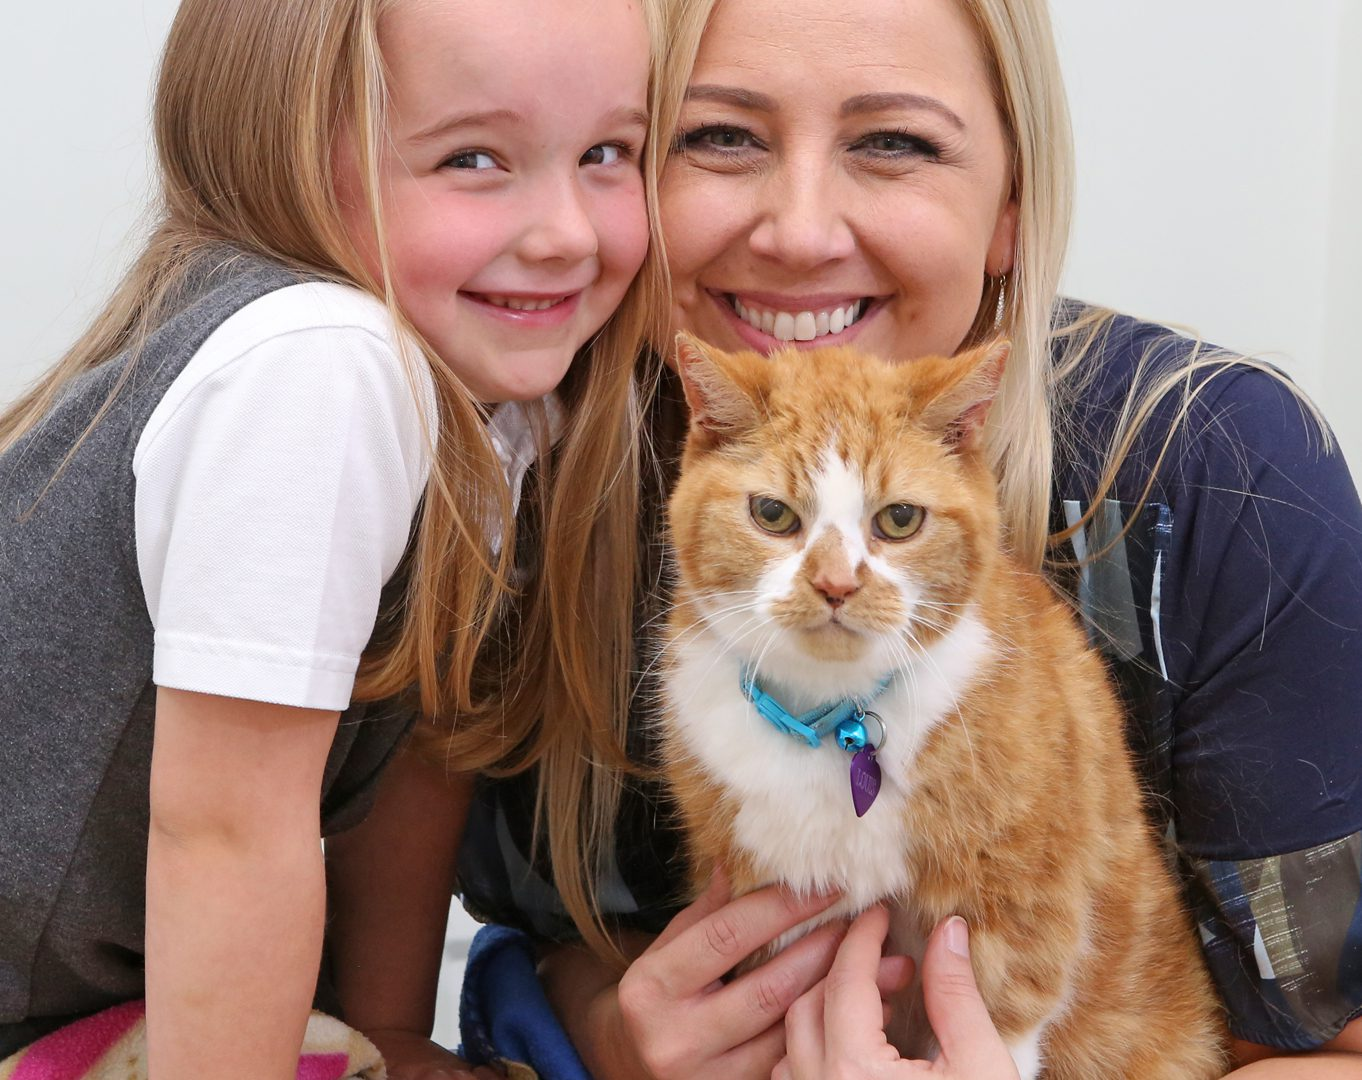 Loveable Louis with nine lives still thriving aged 16